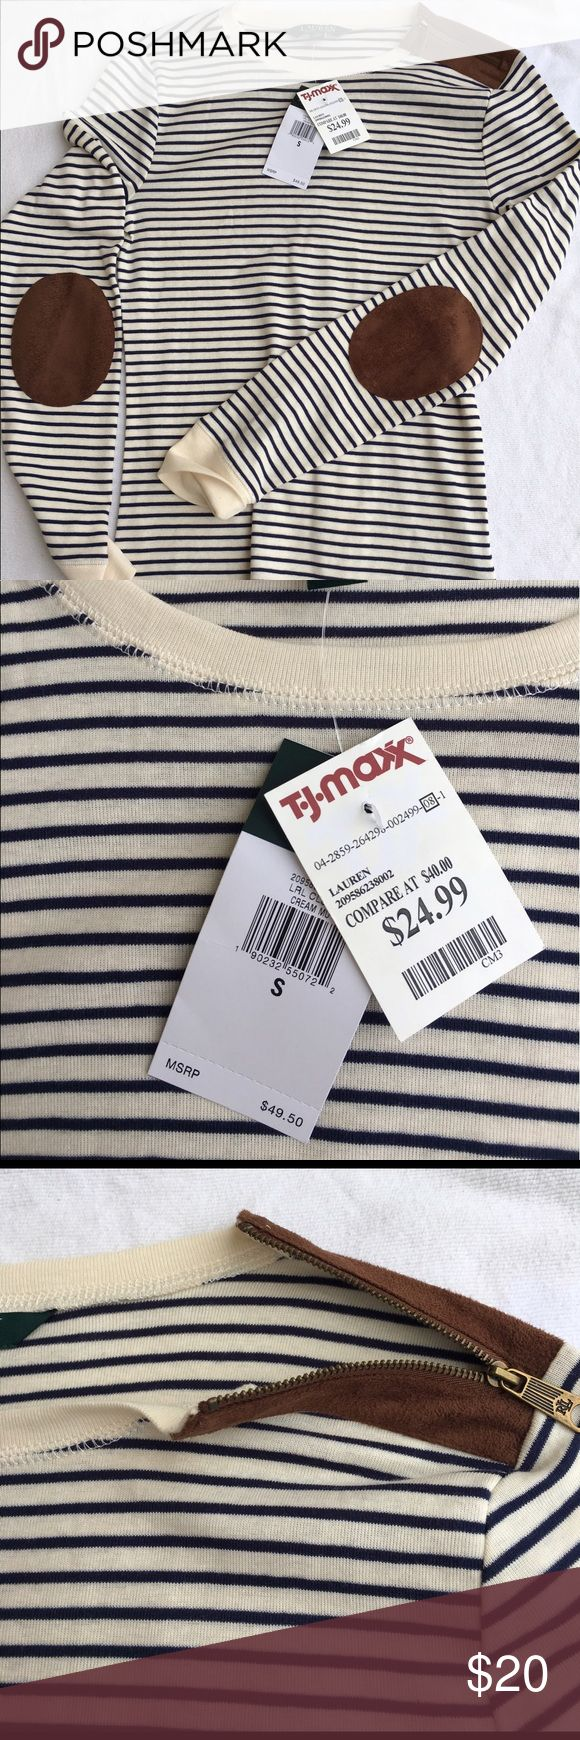 Polo Ralph Lauren long sleeve New striped polo long sleeve shirt w/ elbow patches and zipper Polo by Ralph Lauren Tops Blouses